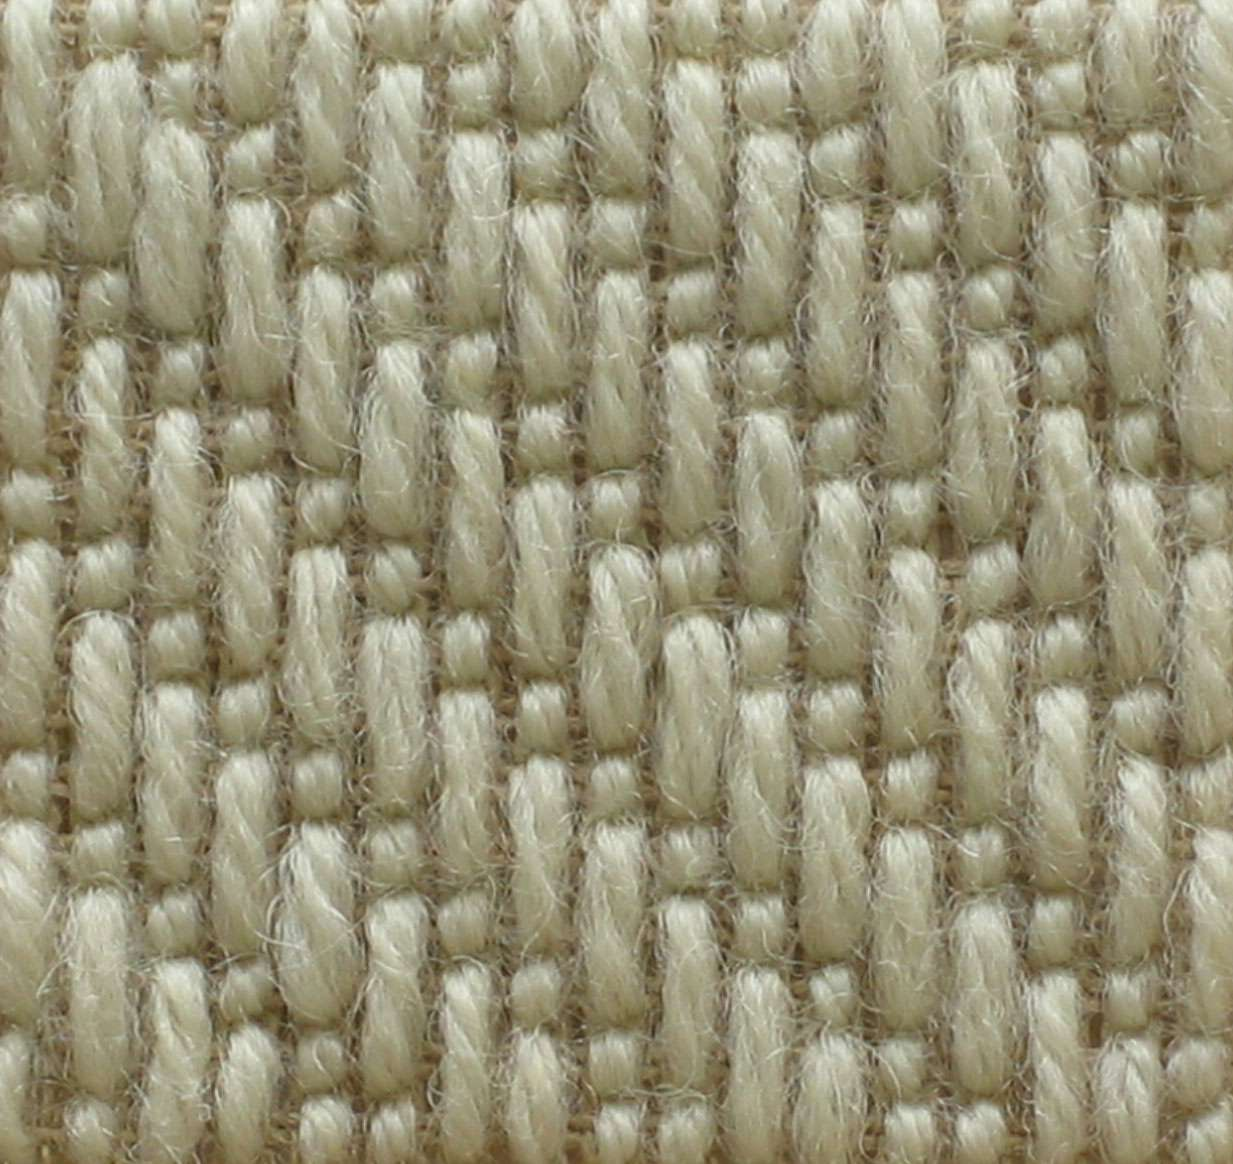 The Double Woven Stitch